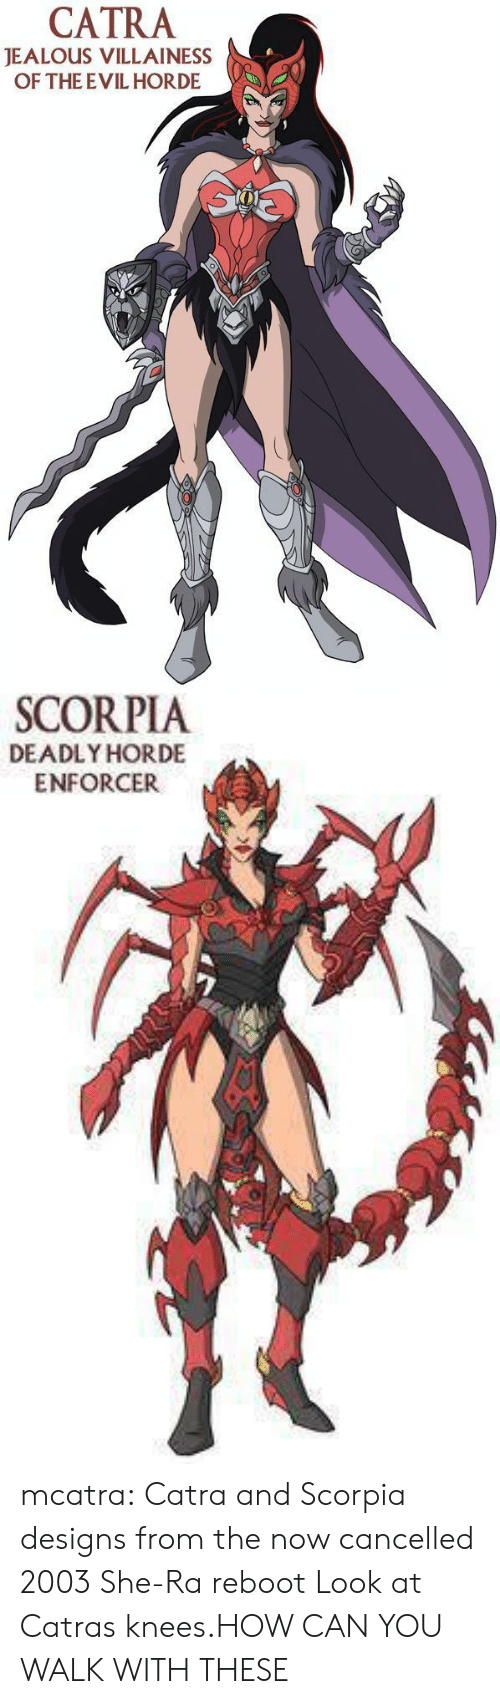 Jealous, Tumblr, and Blog: CATRA  JEALOUS VILLAINESS  OF THE EVIL HORDE   SCORPIA  DEADLY HORDE  ENFORCER mcatra:  Catra and Scorpia designs from the now cancelled 2003 She-Ra reboot  Look at Catras knees.HOW CAN YOU WALK WITH THESE